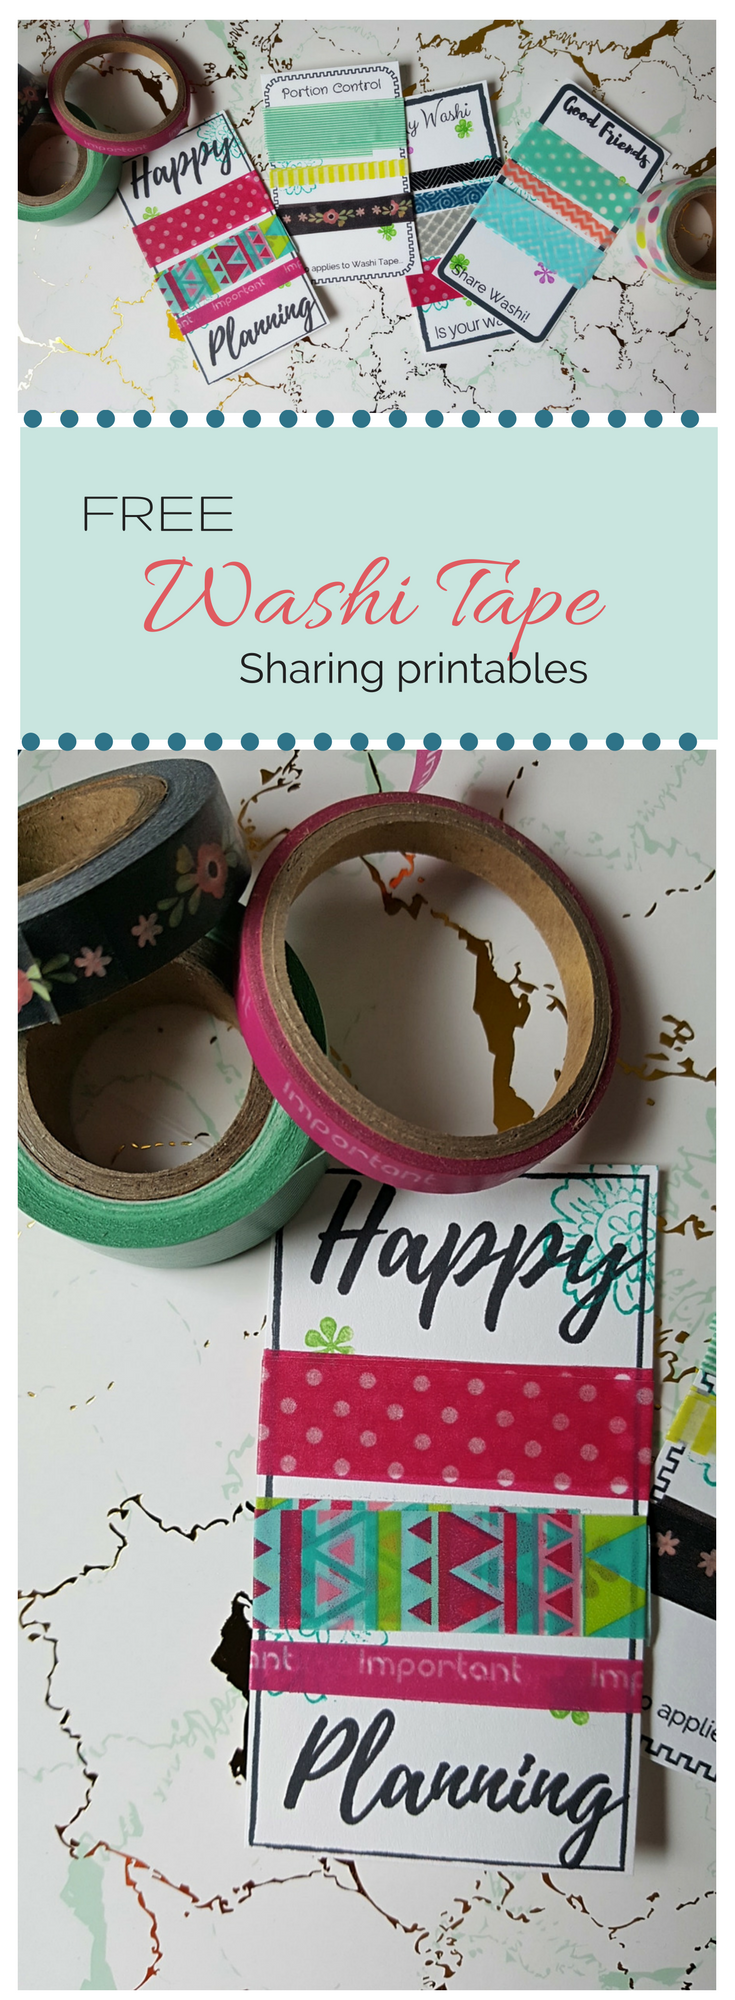 Planner printable Free planner printable: Washi Tape Sharing Printable - trade washi with friends and uplevel your planner - free printable, 6 designs. #washi #washitape #printable #planner #planneraddict